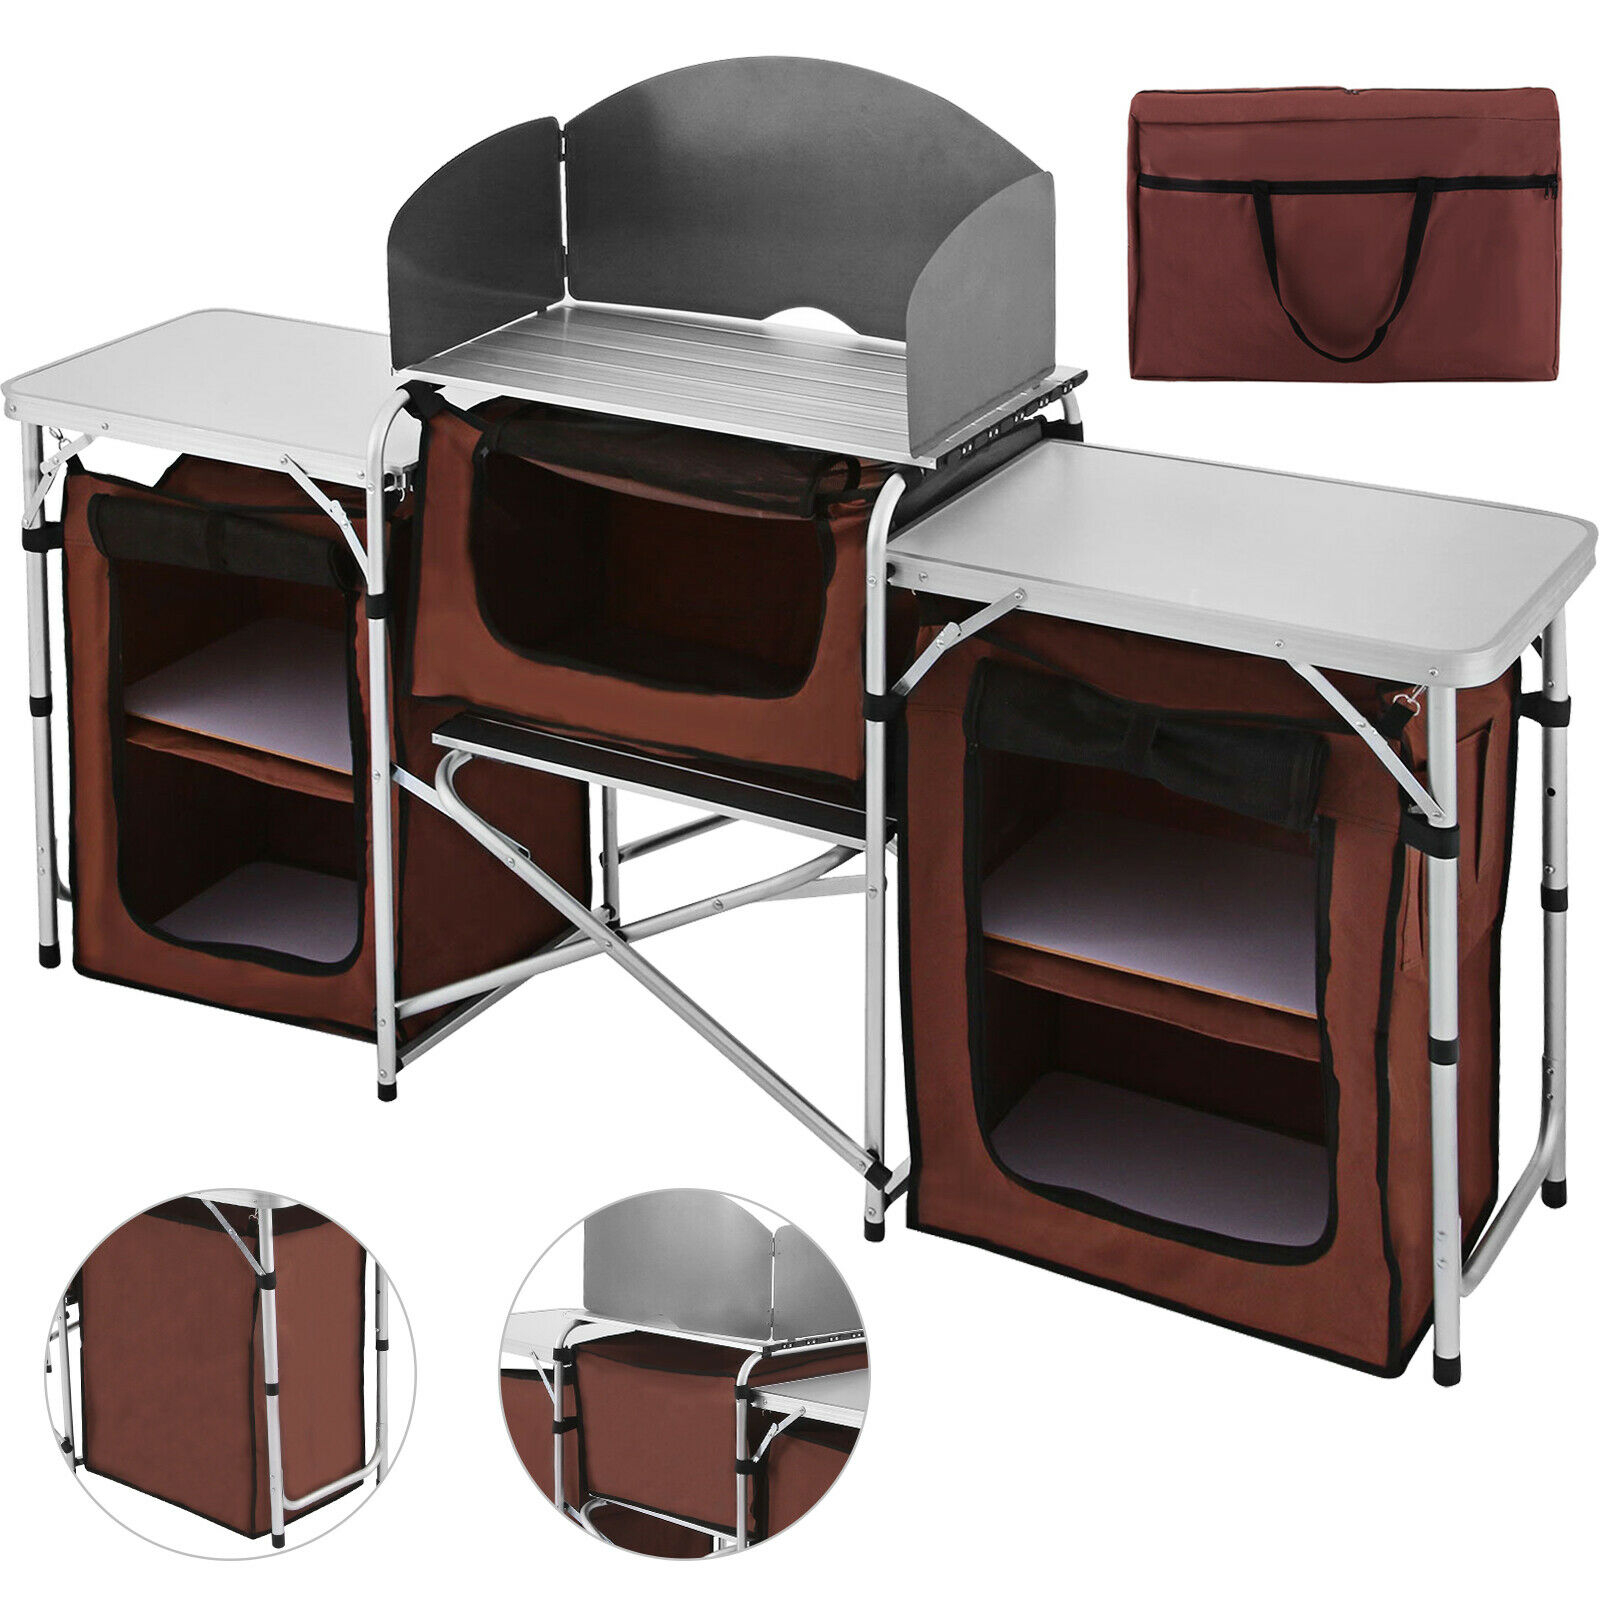 Aluminium Super Light Camping Kitchen With Sink Bowl In Carry Bag Caravan throughout measurements 1600 X 1600